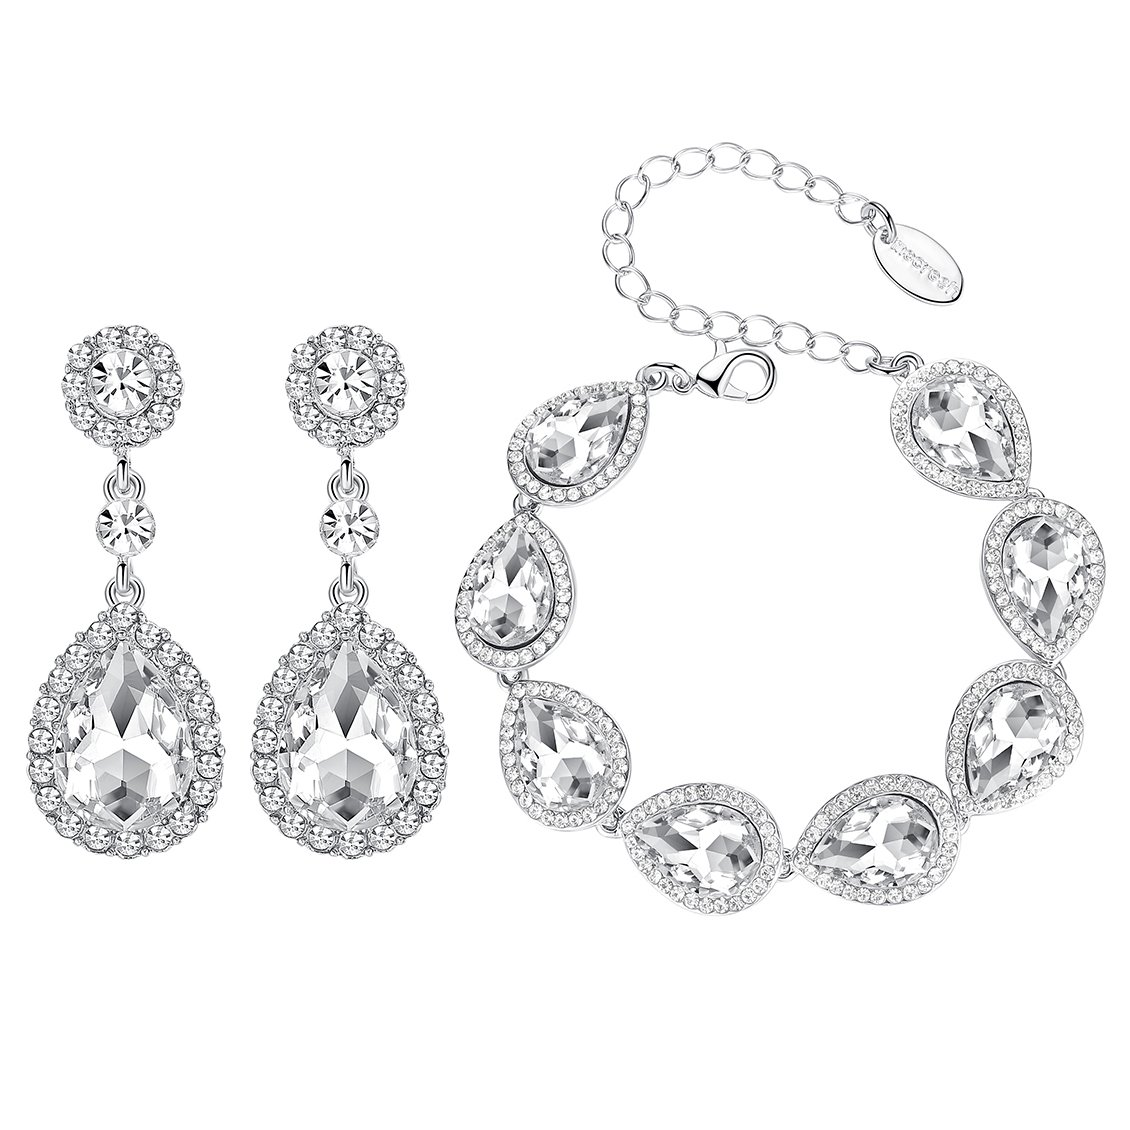 mecresh Flower Teardrop Clear Austrian Crystal Jewelry Sets for Women or Bridesmaids(1 Set Earring,1PCS Bracelet)